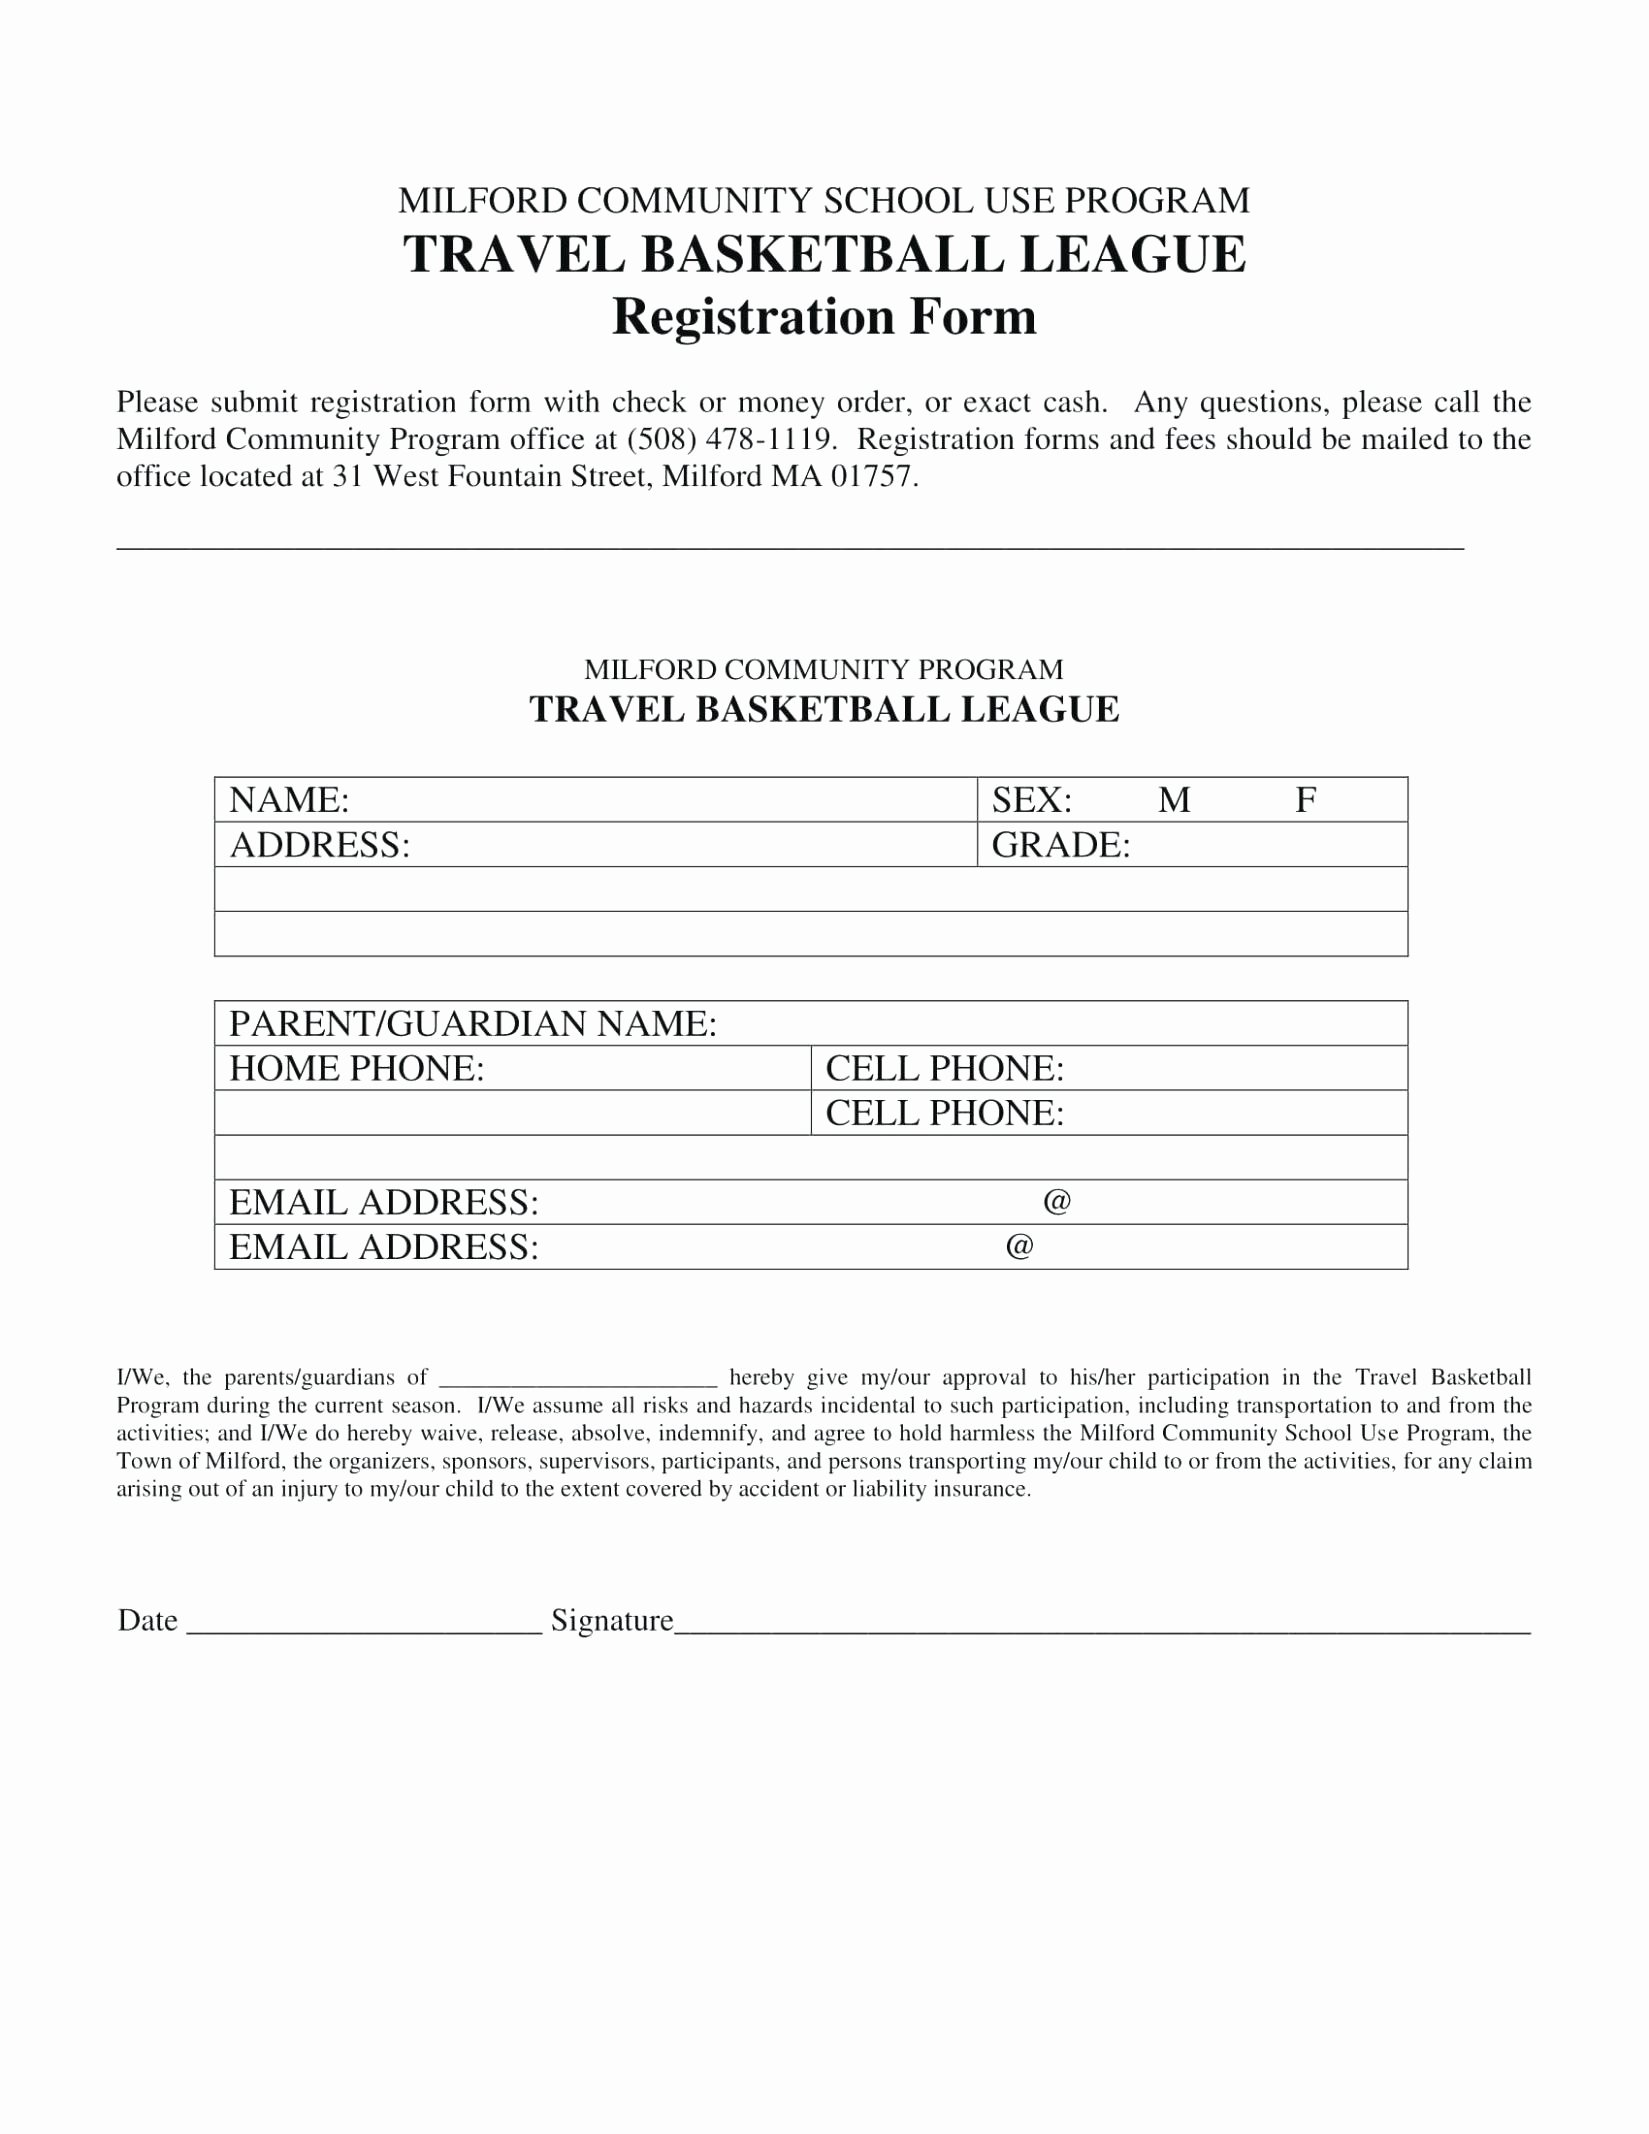 School Registration forms Template Best Of Sample School Registration form Sponsorship Packet